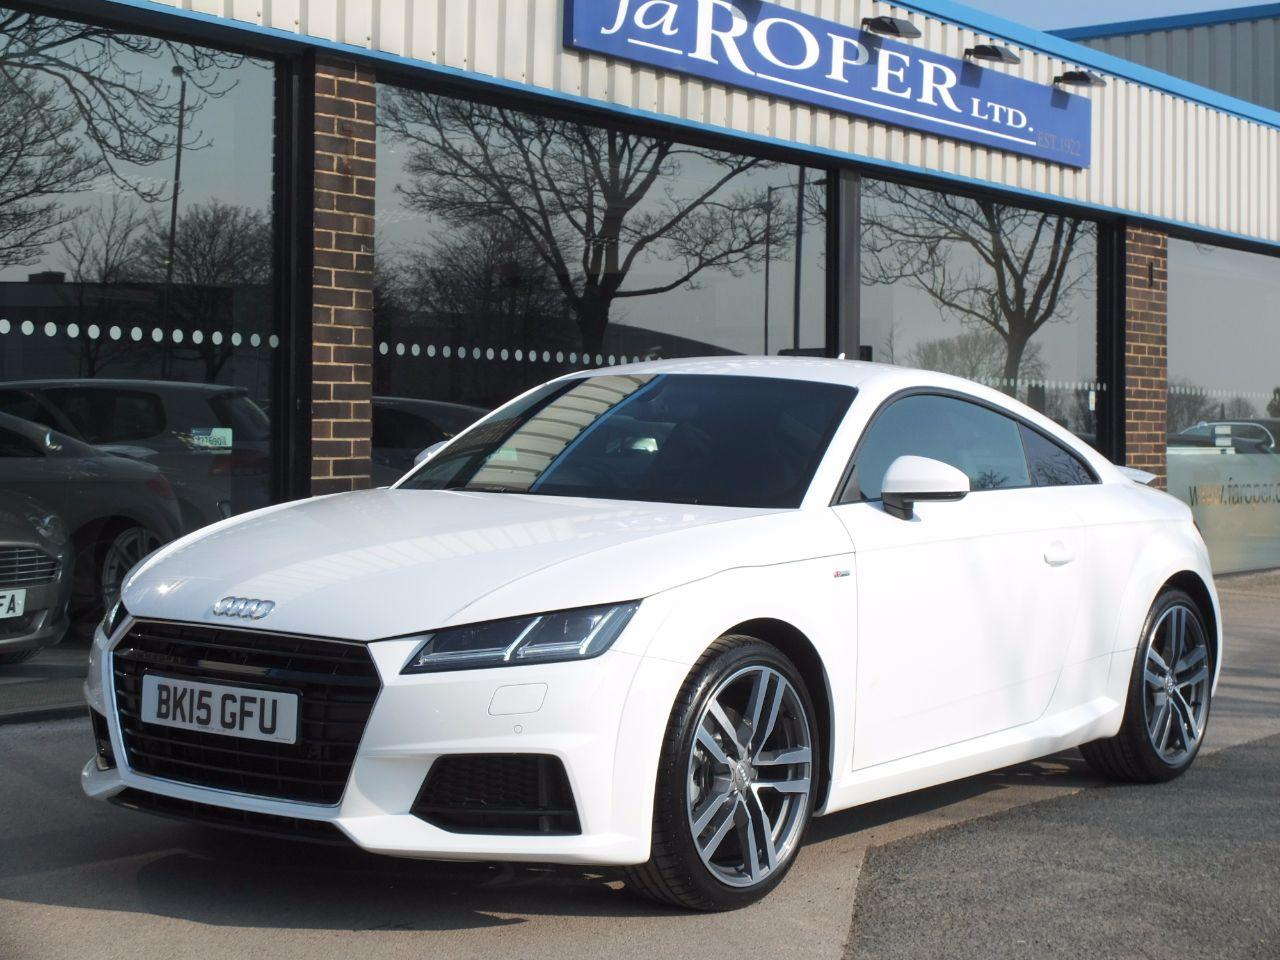 Audi TT 2.0 TDI ultra S Line Coupe 184ps Coupe Diesel Ibis White